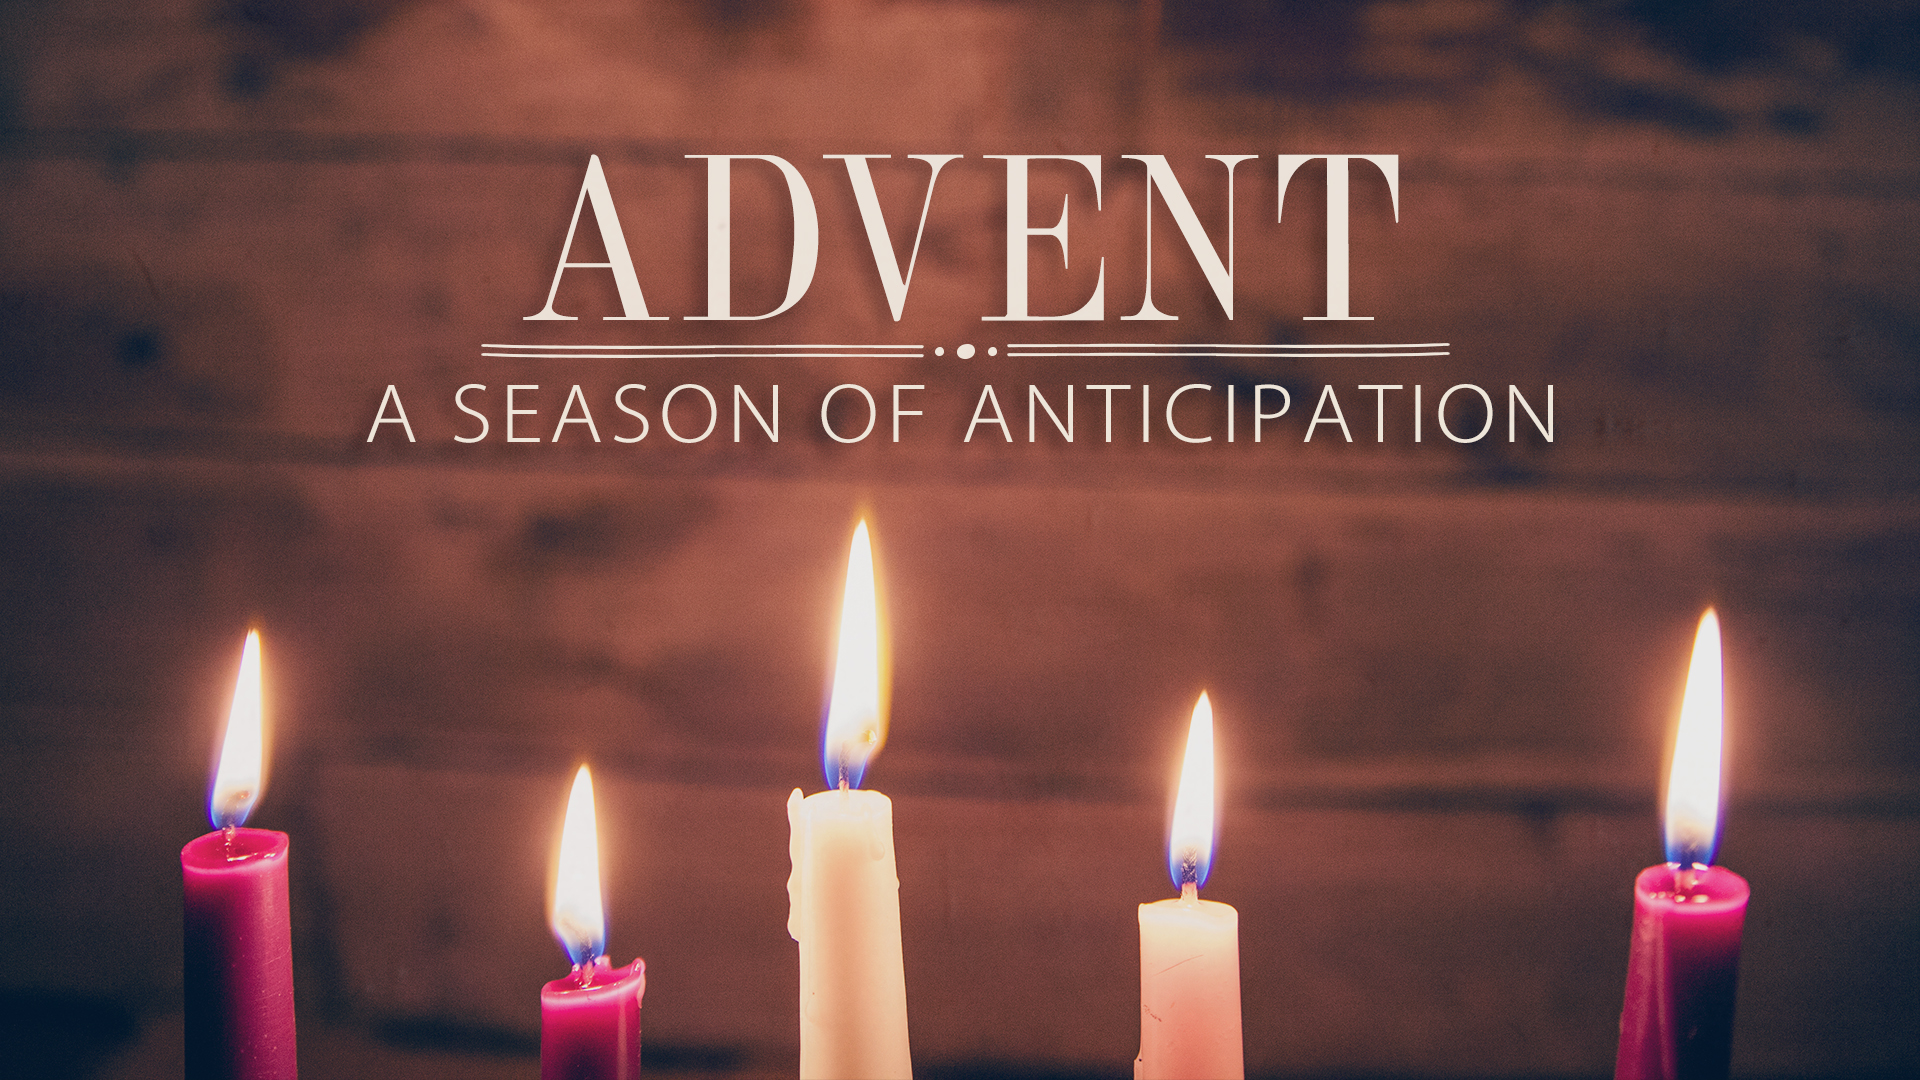 Advent: A Season of Anticipation